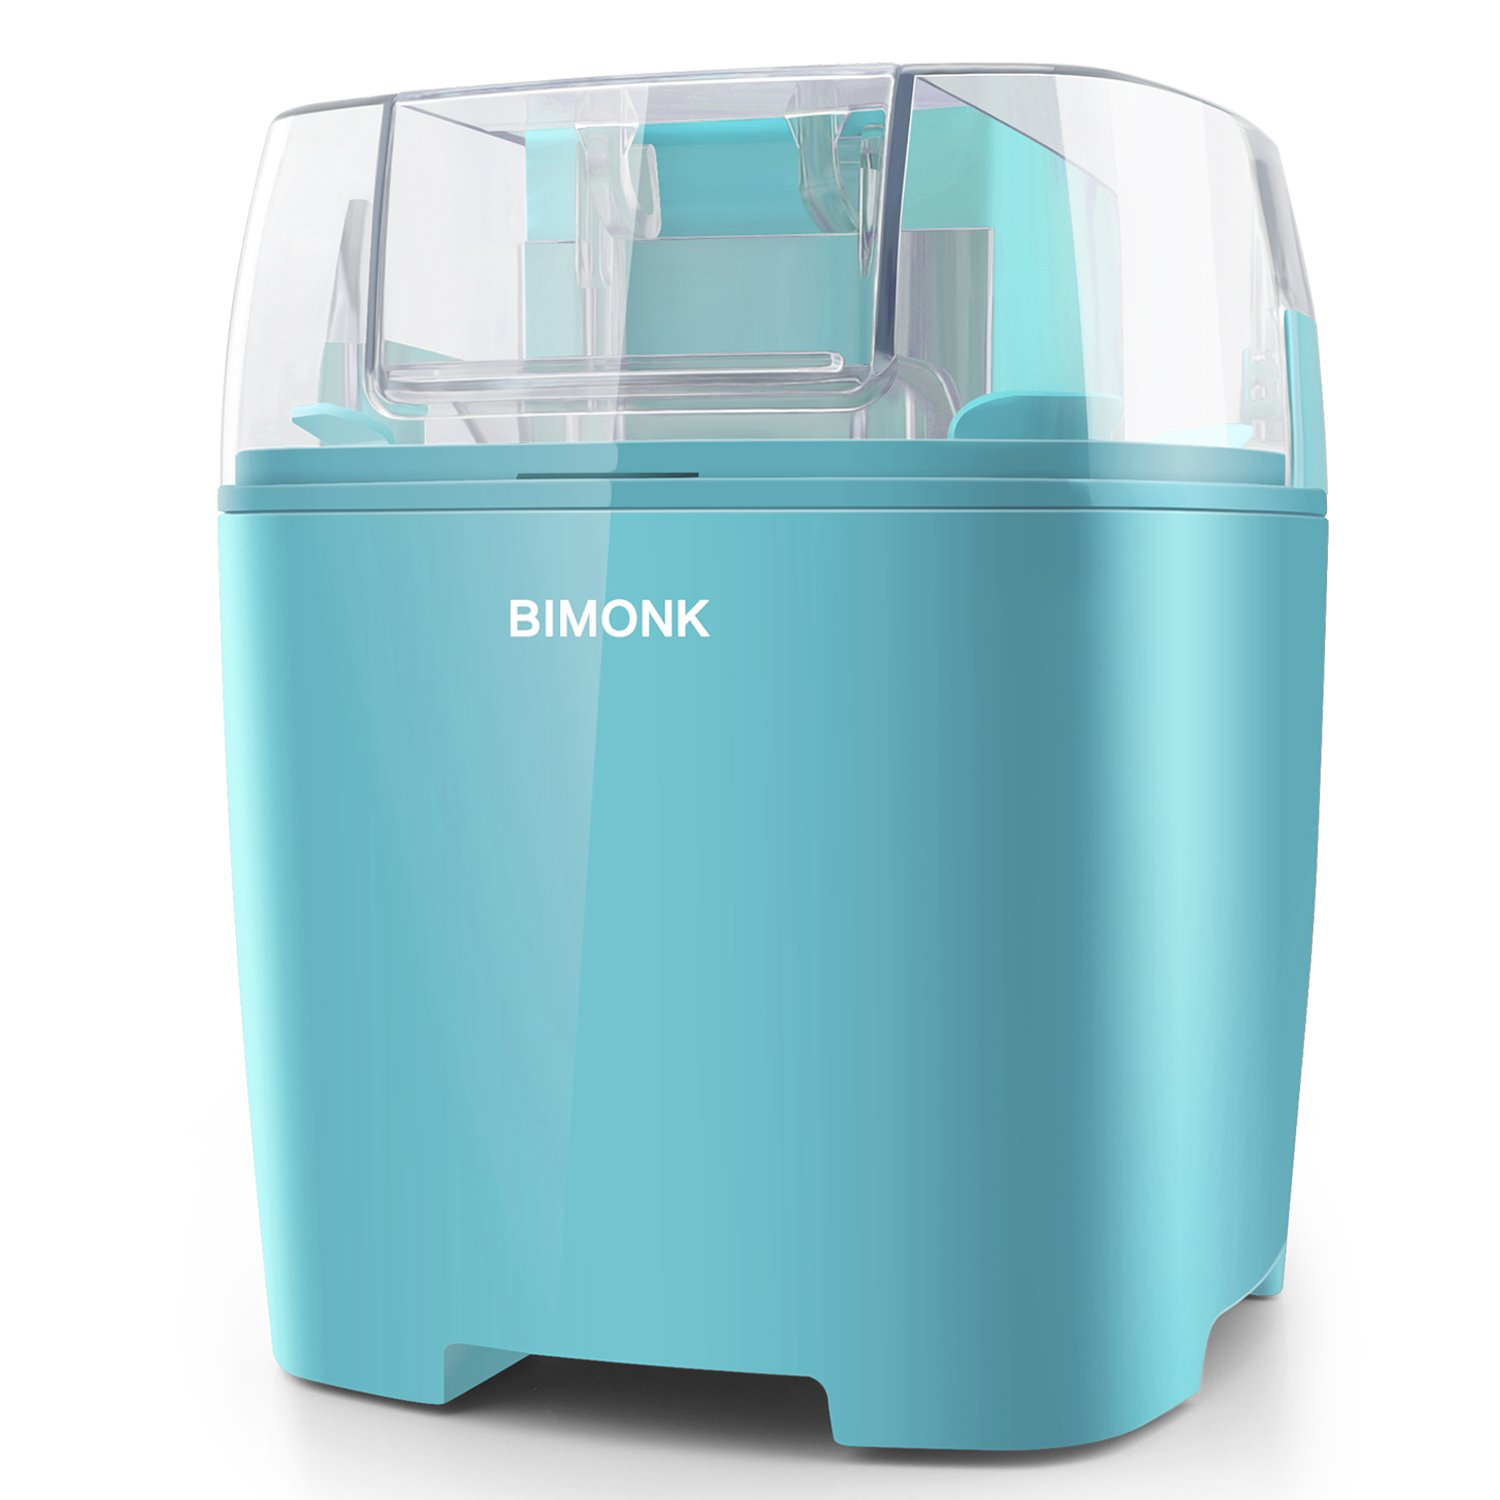 BIMONK Ice Cream Maker, for Kids DIY Frozen Yogurt, Gelato Or Sorbet Maker, with Control Knob and Auto Shut Off, BPA Free Electric ice Cream Machine for Home - 1.5 Quart, Blue …